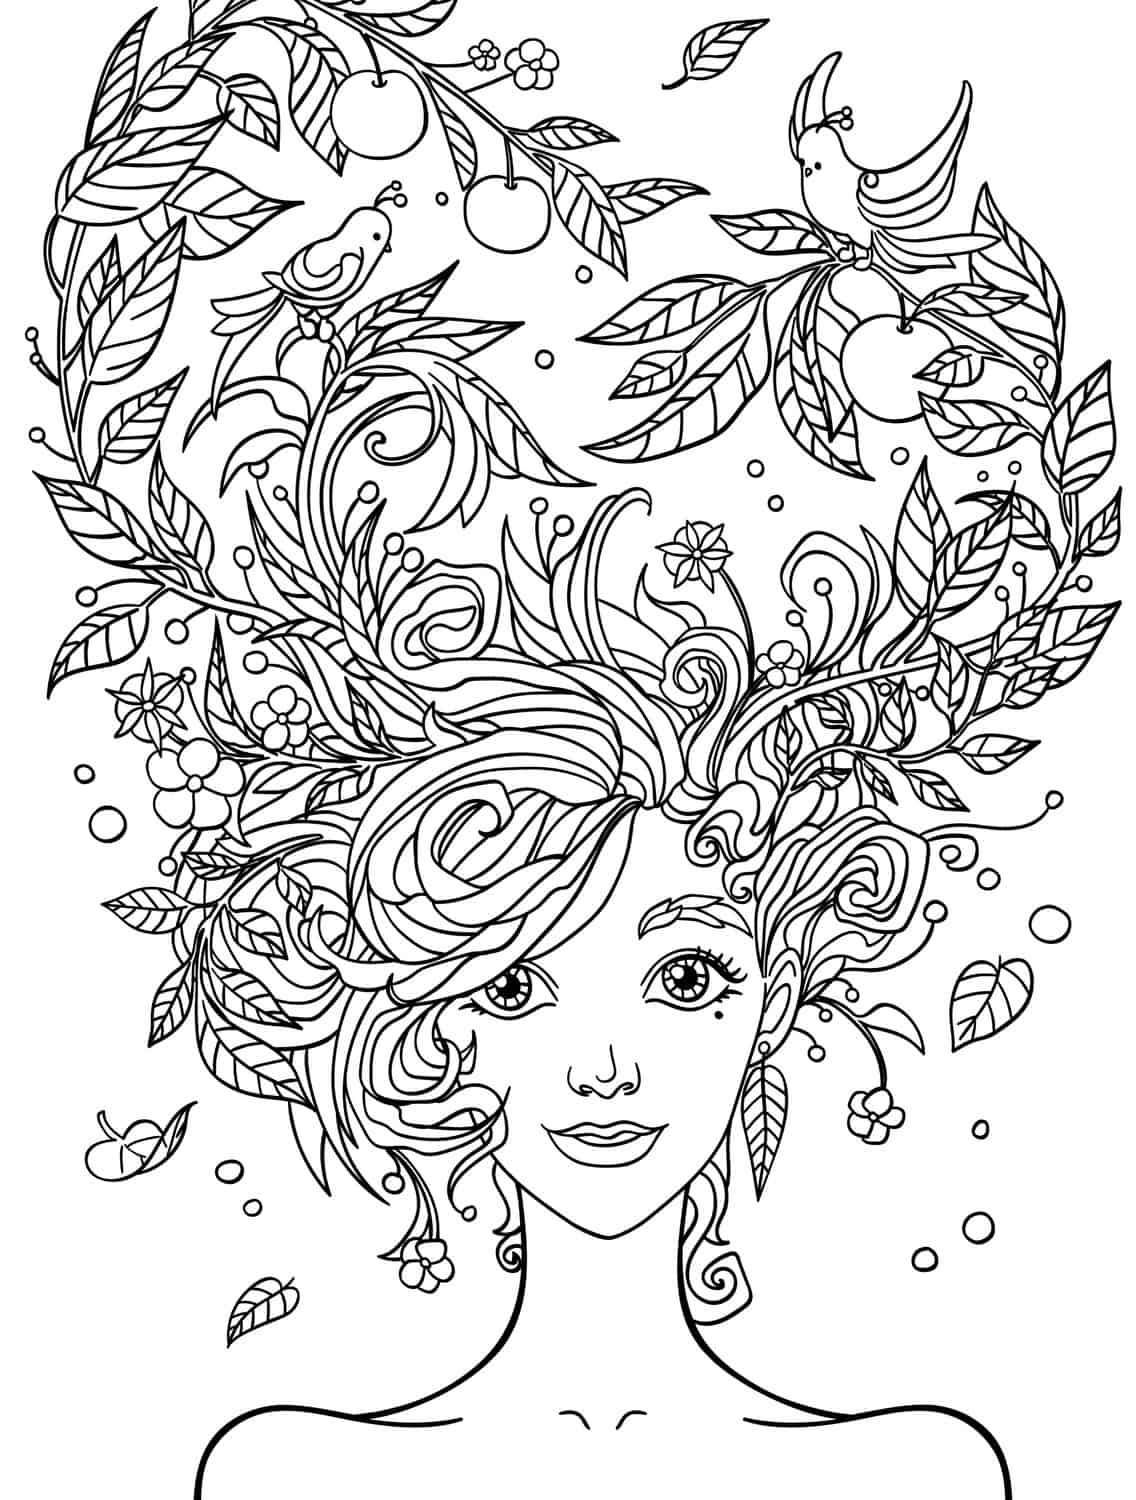 10 Crazy Hair Adult Coloring Pages